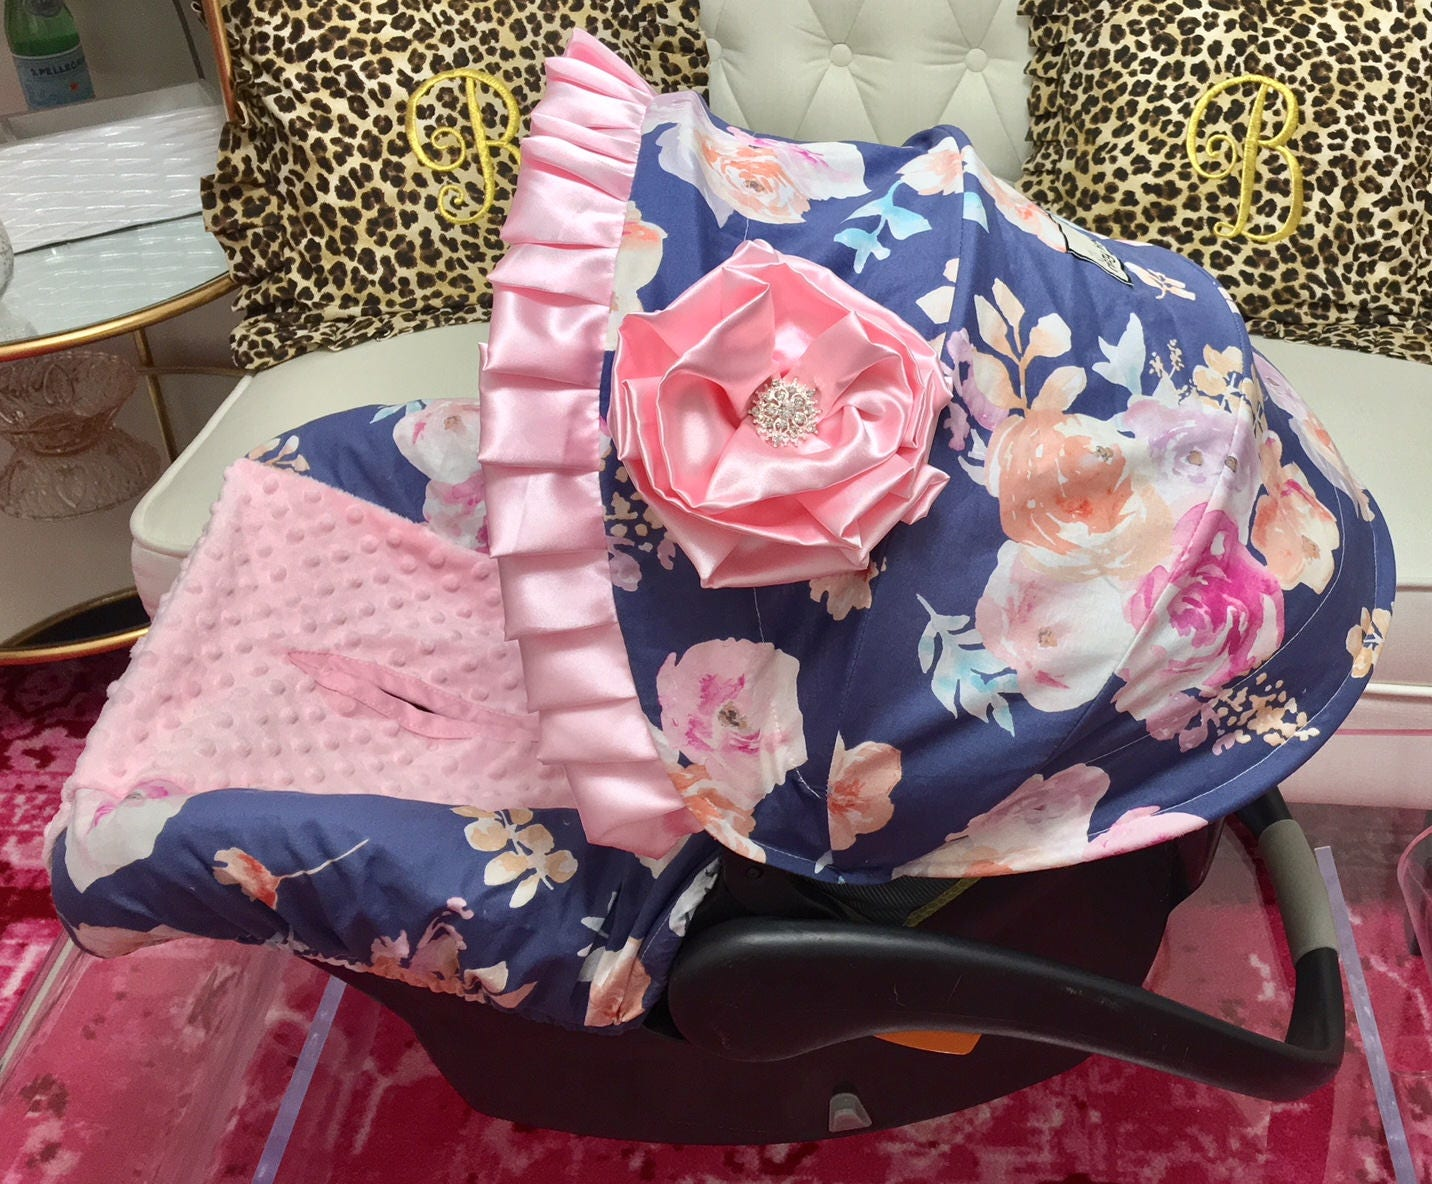 Baby Girl Infant Car Seats: Baby Girl Infant Carseat Covers Navy And Pink Floral Car Seat